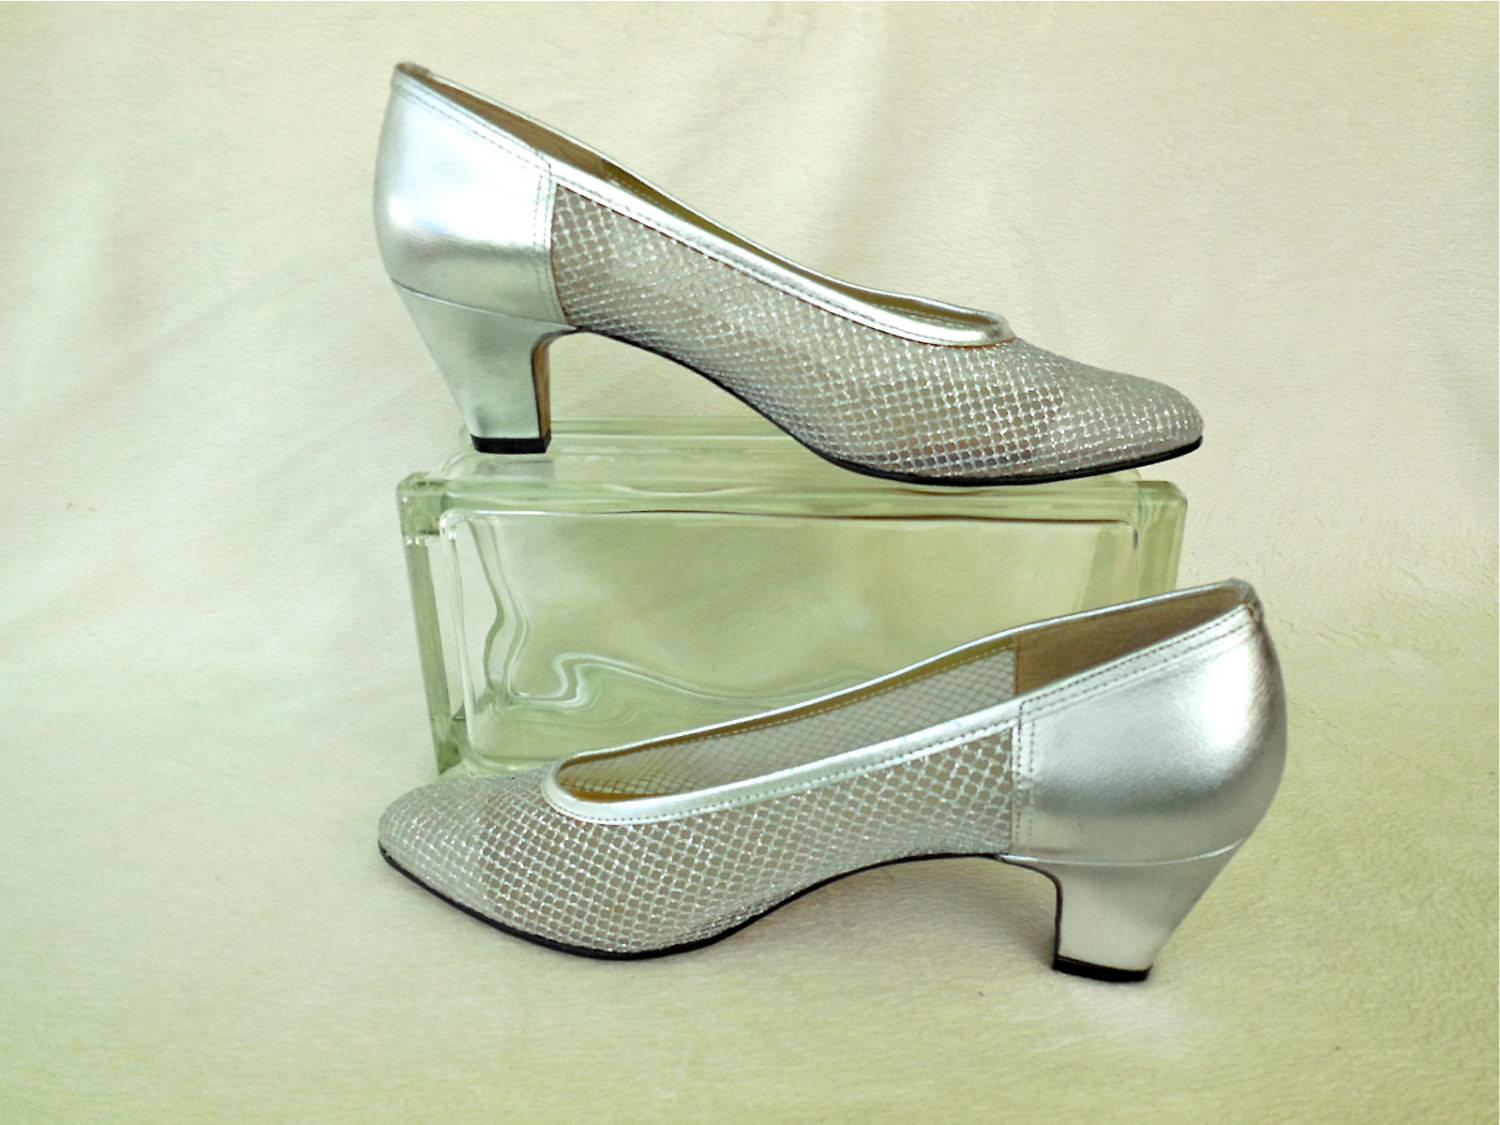 Vintage Transparent Silver High Heels